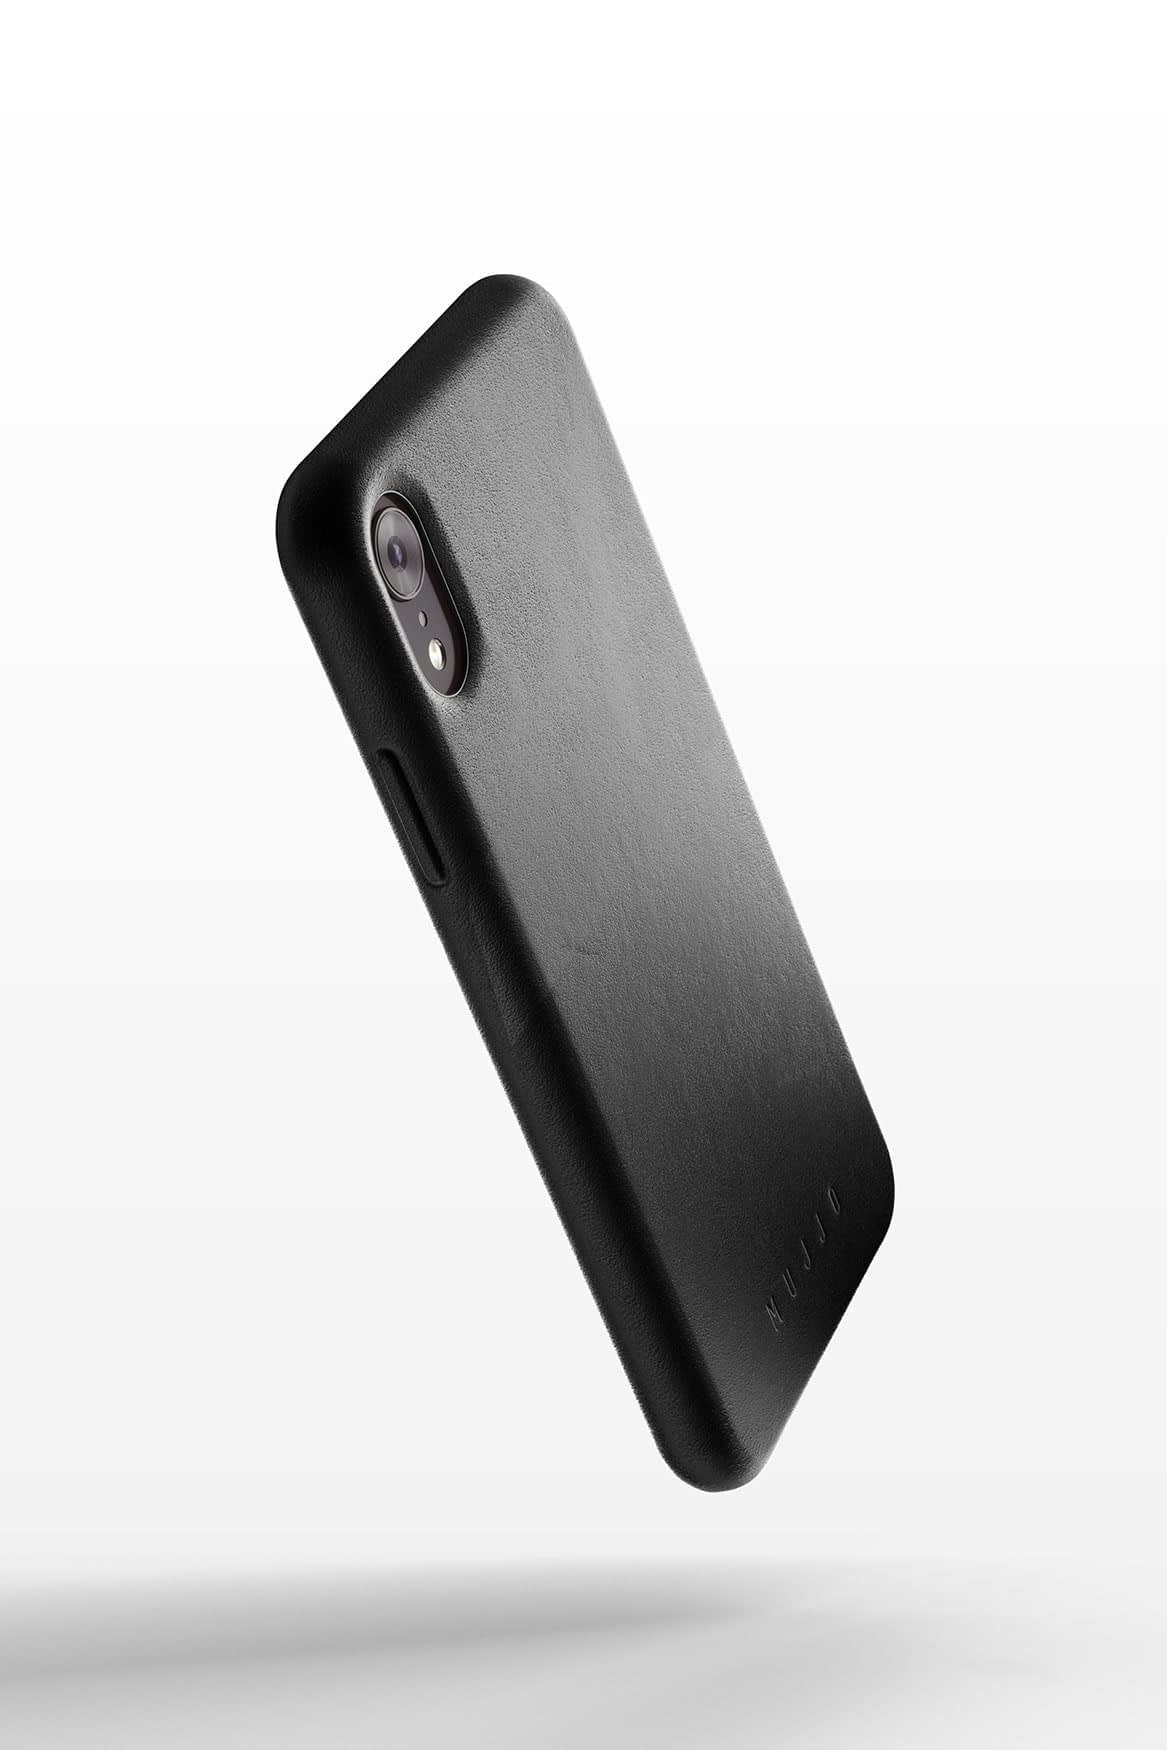 Full leather case for iPhone Xr Black 01